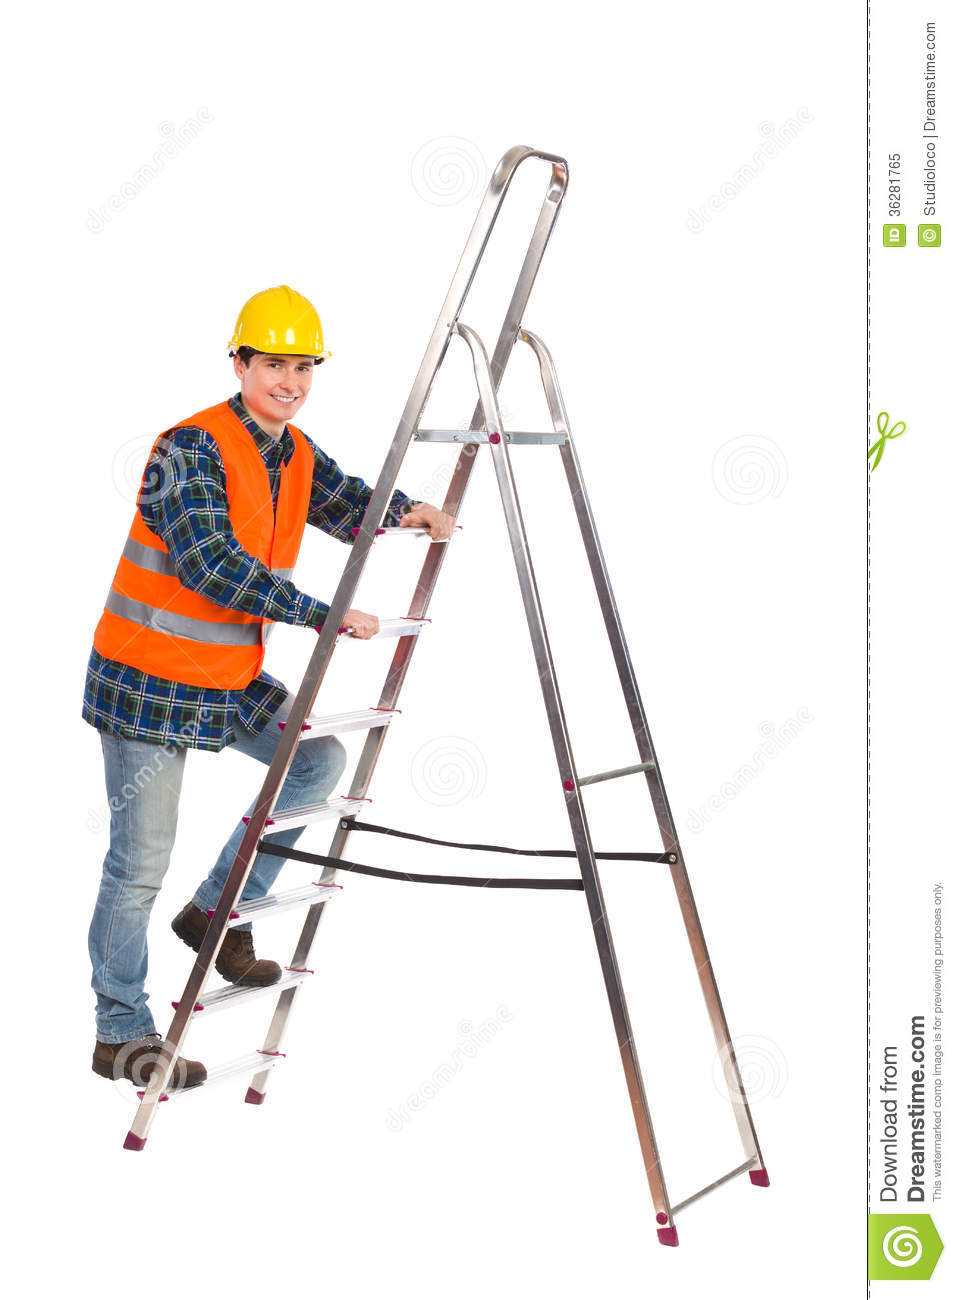 Construction Worker In Reflective Clothing Climbing A Ladder. Stock ... for Worker Climbing Ladder  177nar